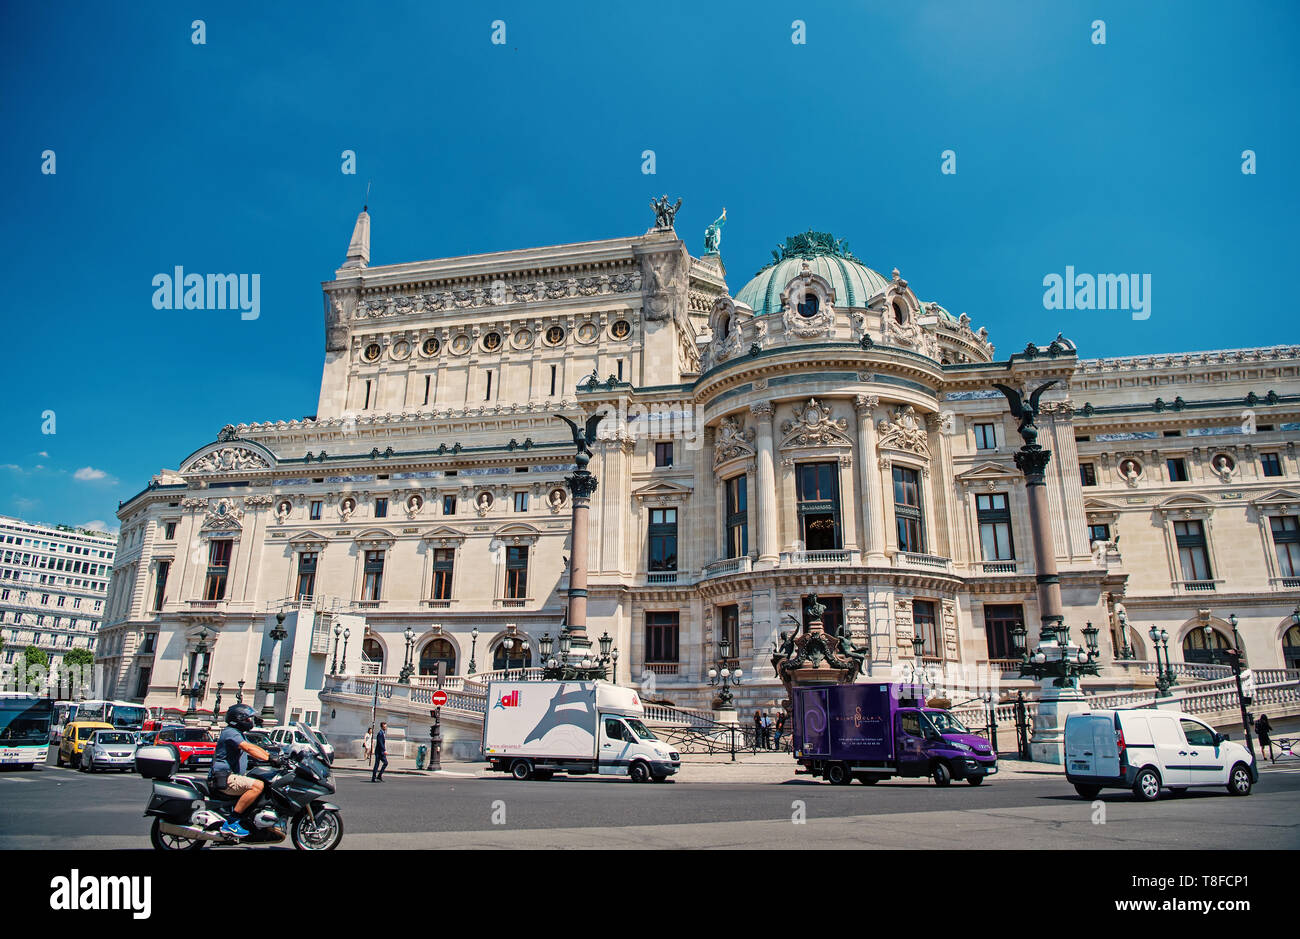 Paris, France - June 01, 2017: Garnier palace or opera house building on sunny blue sky background. City street traffic. Landmark and sightseeing. Classic music and art concept - Stock Image